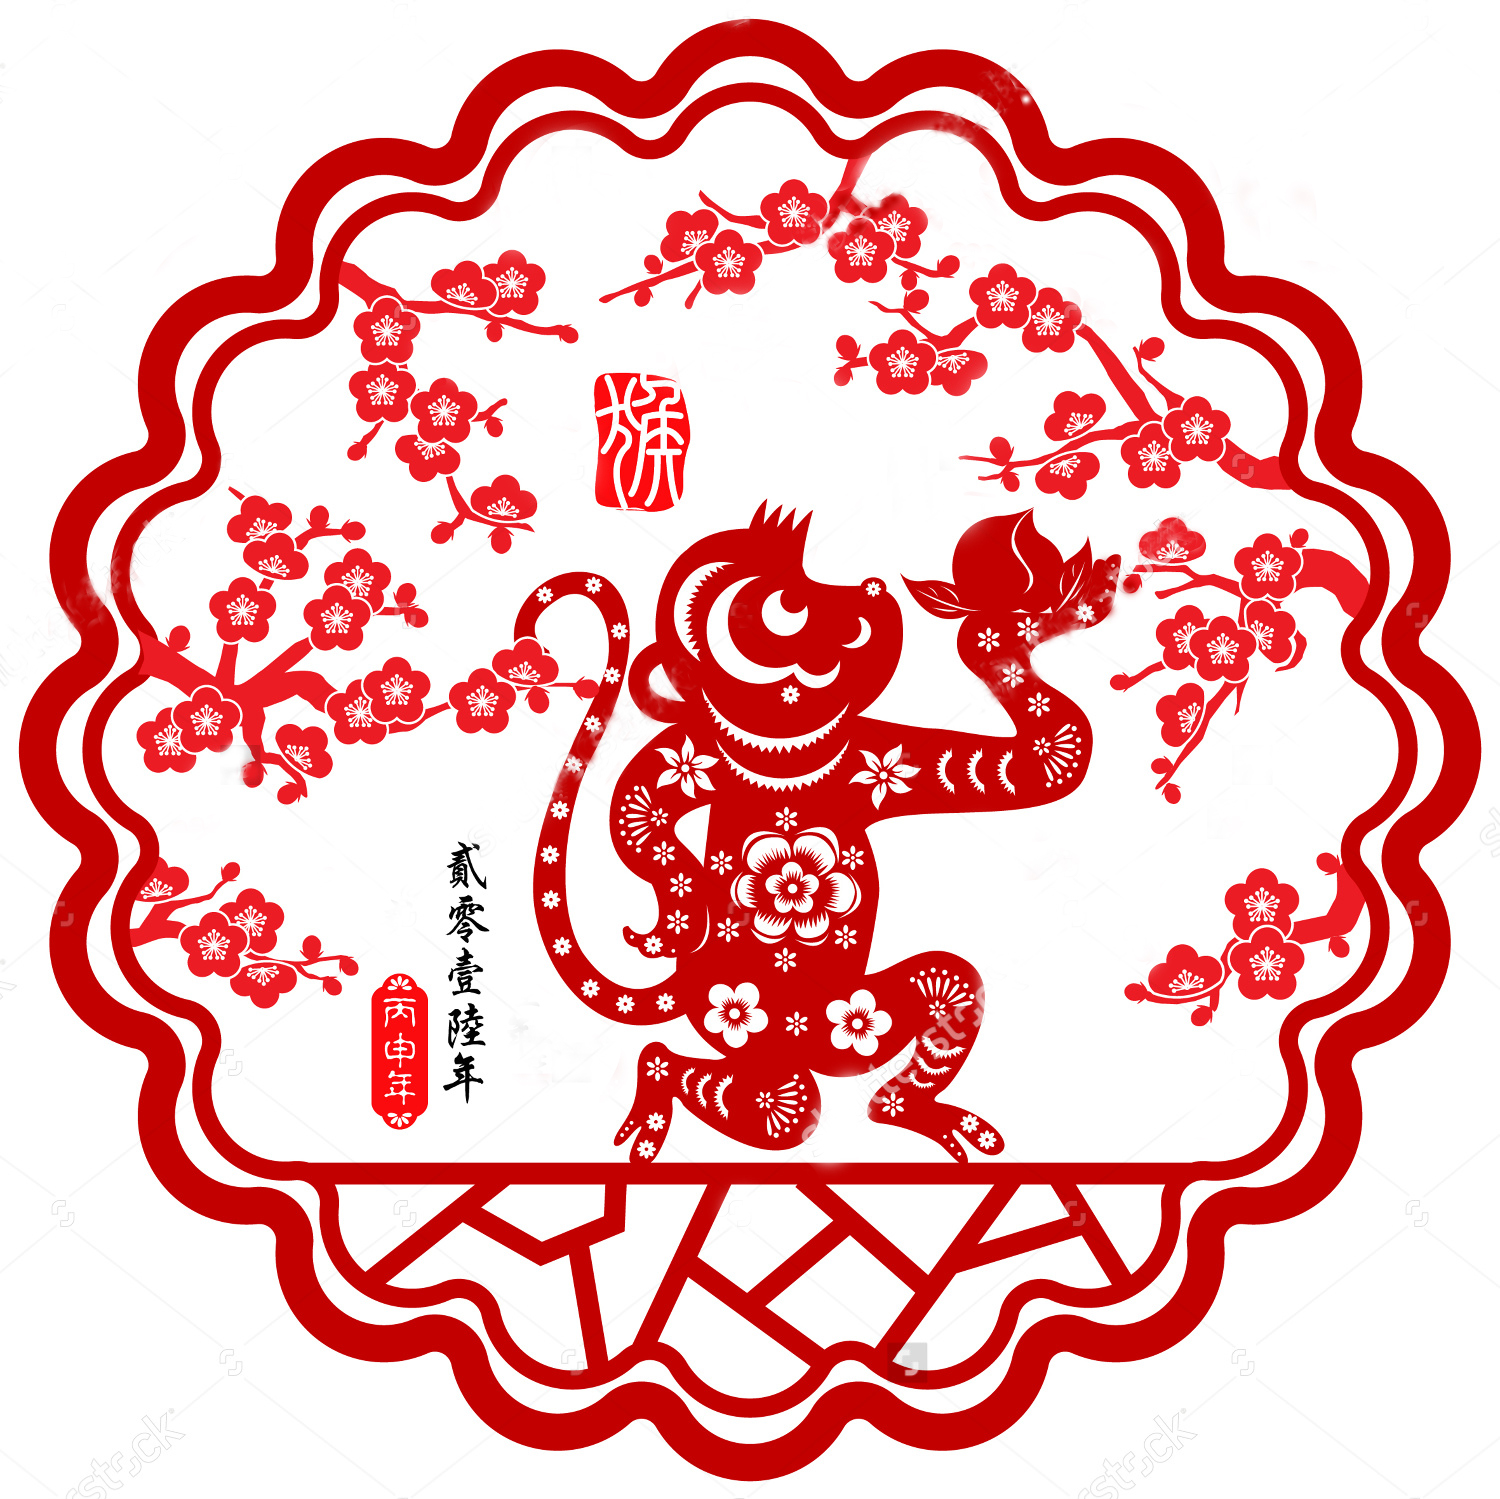 Chinese new year image clipart year of monkey svg free library Chinese New Year 2016: the personality of the monkey - Aleph svg free library